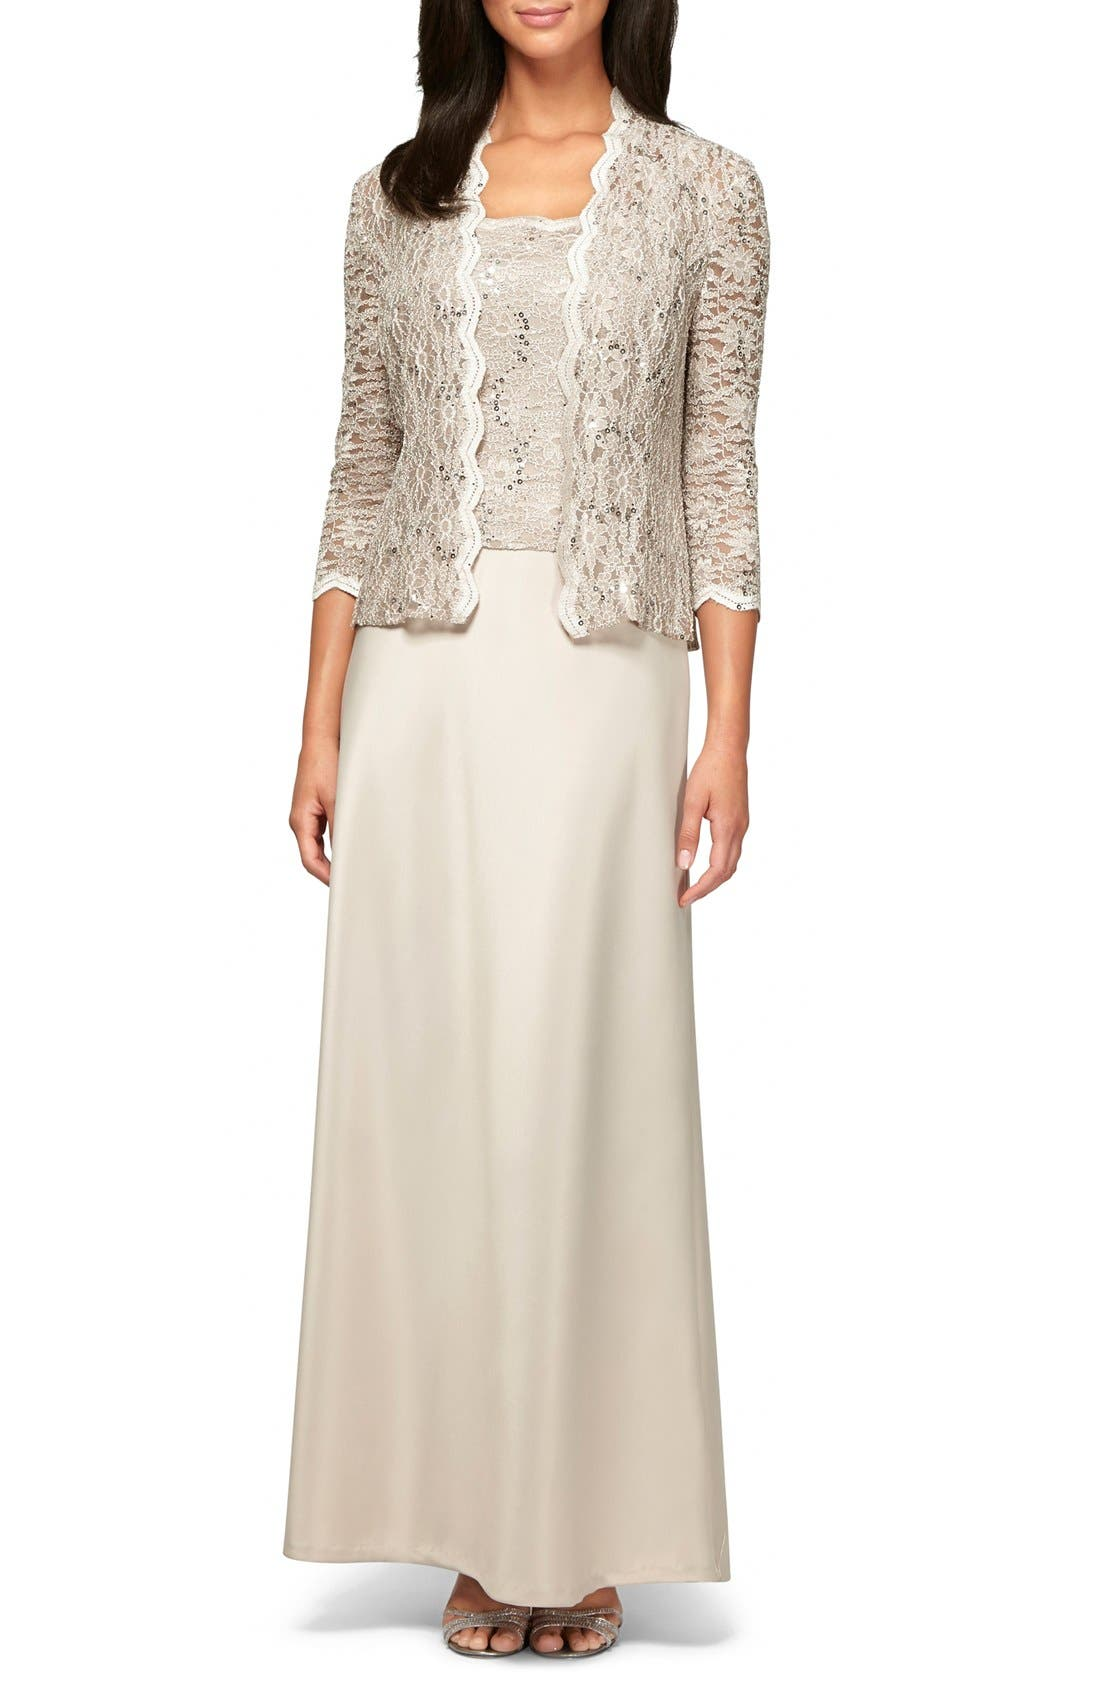 ALEX EVENINGS, Sequin Lace & Satin Gown with Jacket, Main thumbnail 1, color, TAUPE